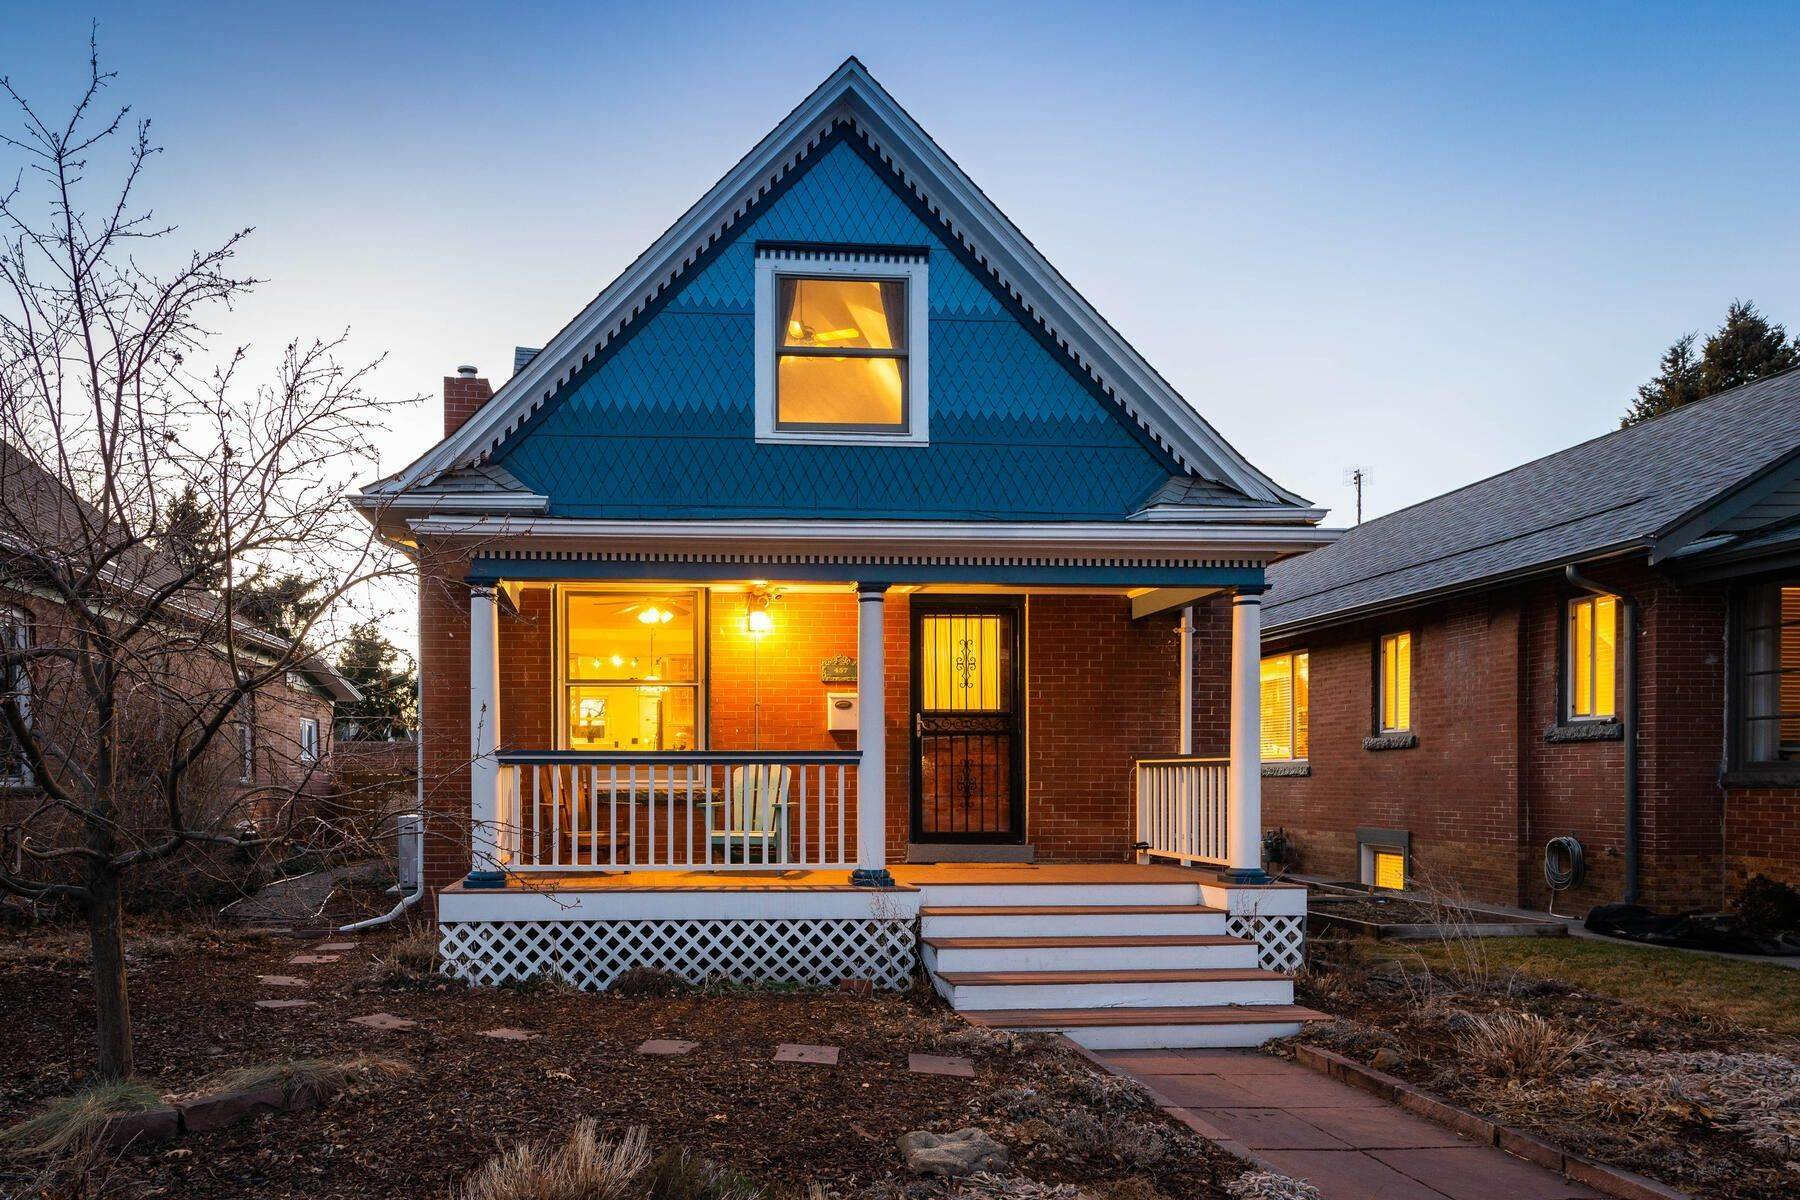 Single Family Homes for Active at Storybook Victorian is Beautifully Located within Alamo Placita 457 N Pearl Street Denver, Colorado 80203 United States